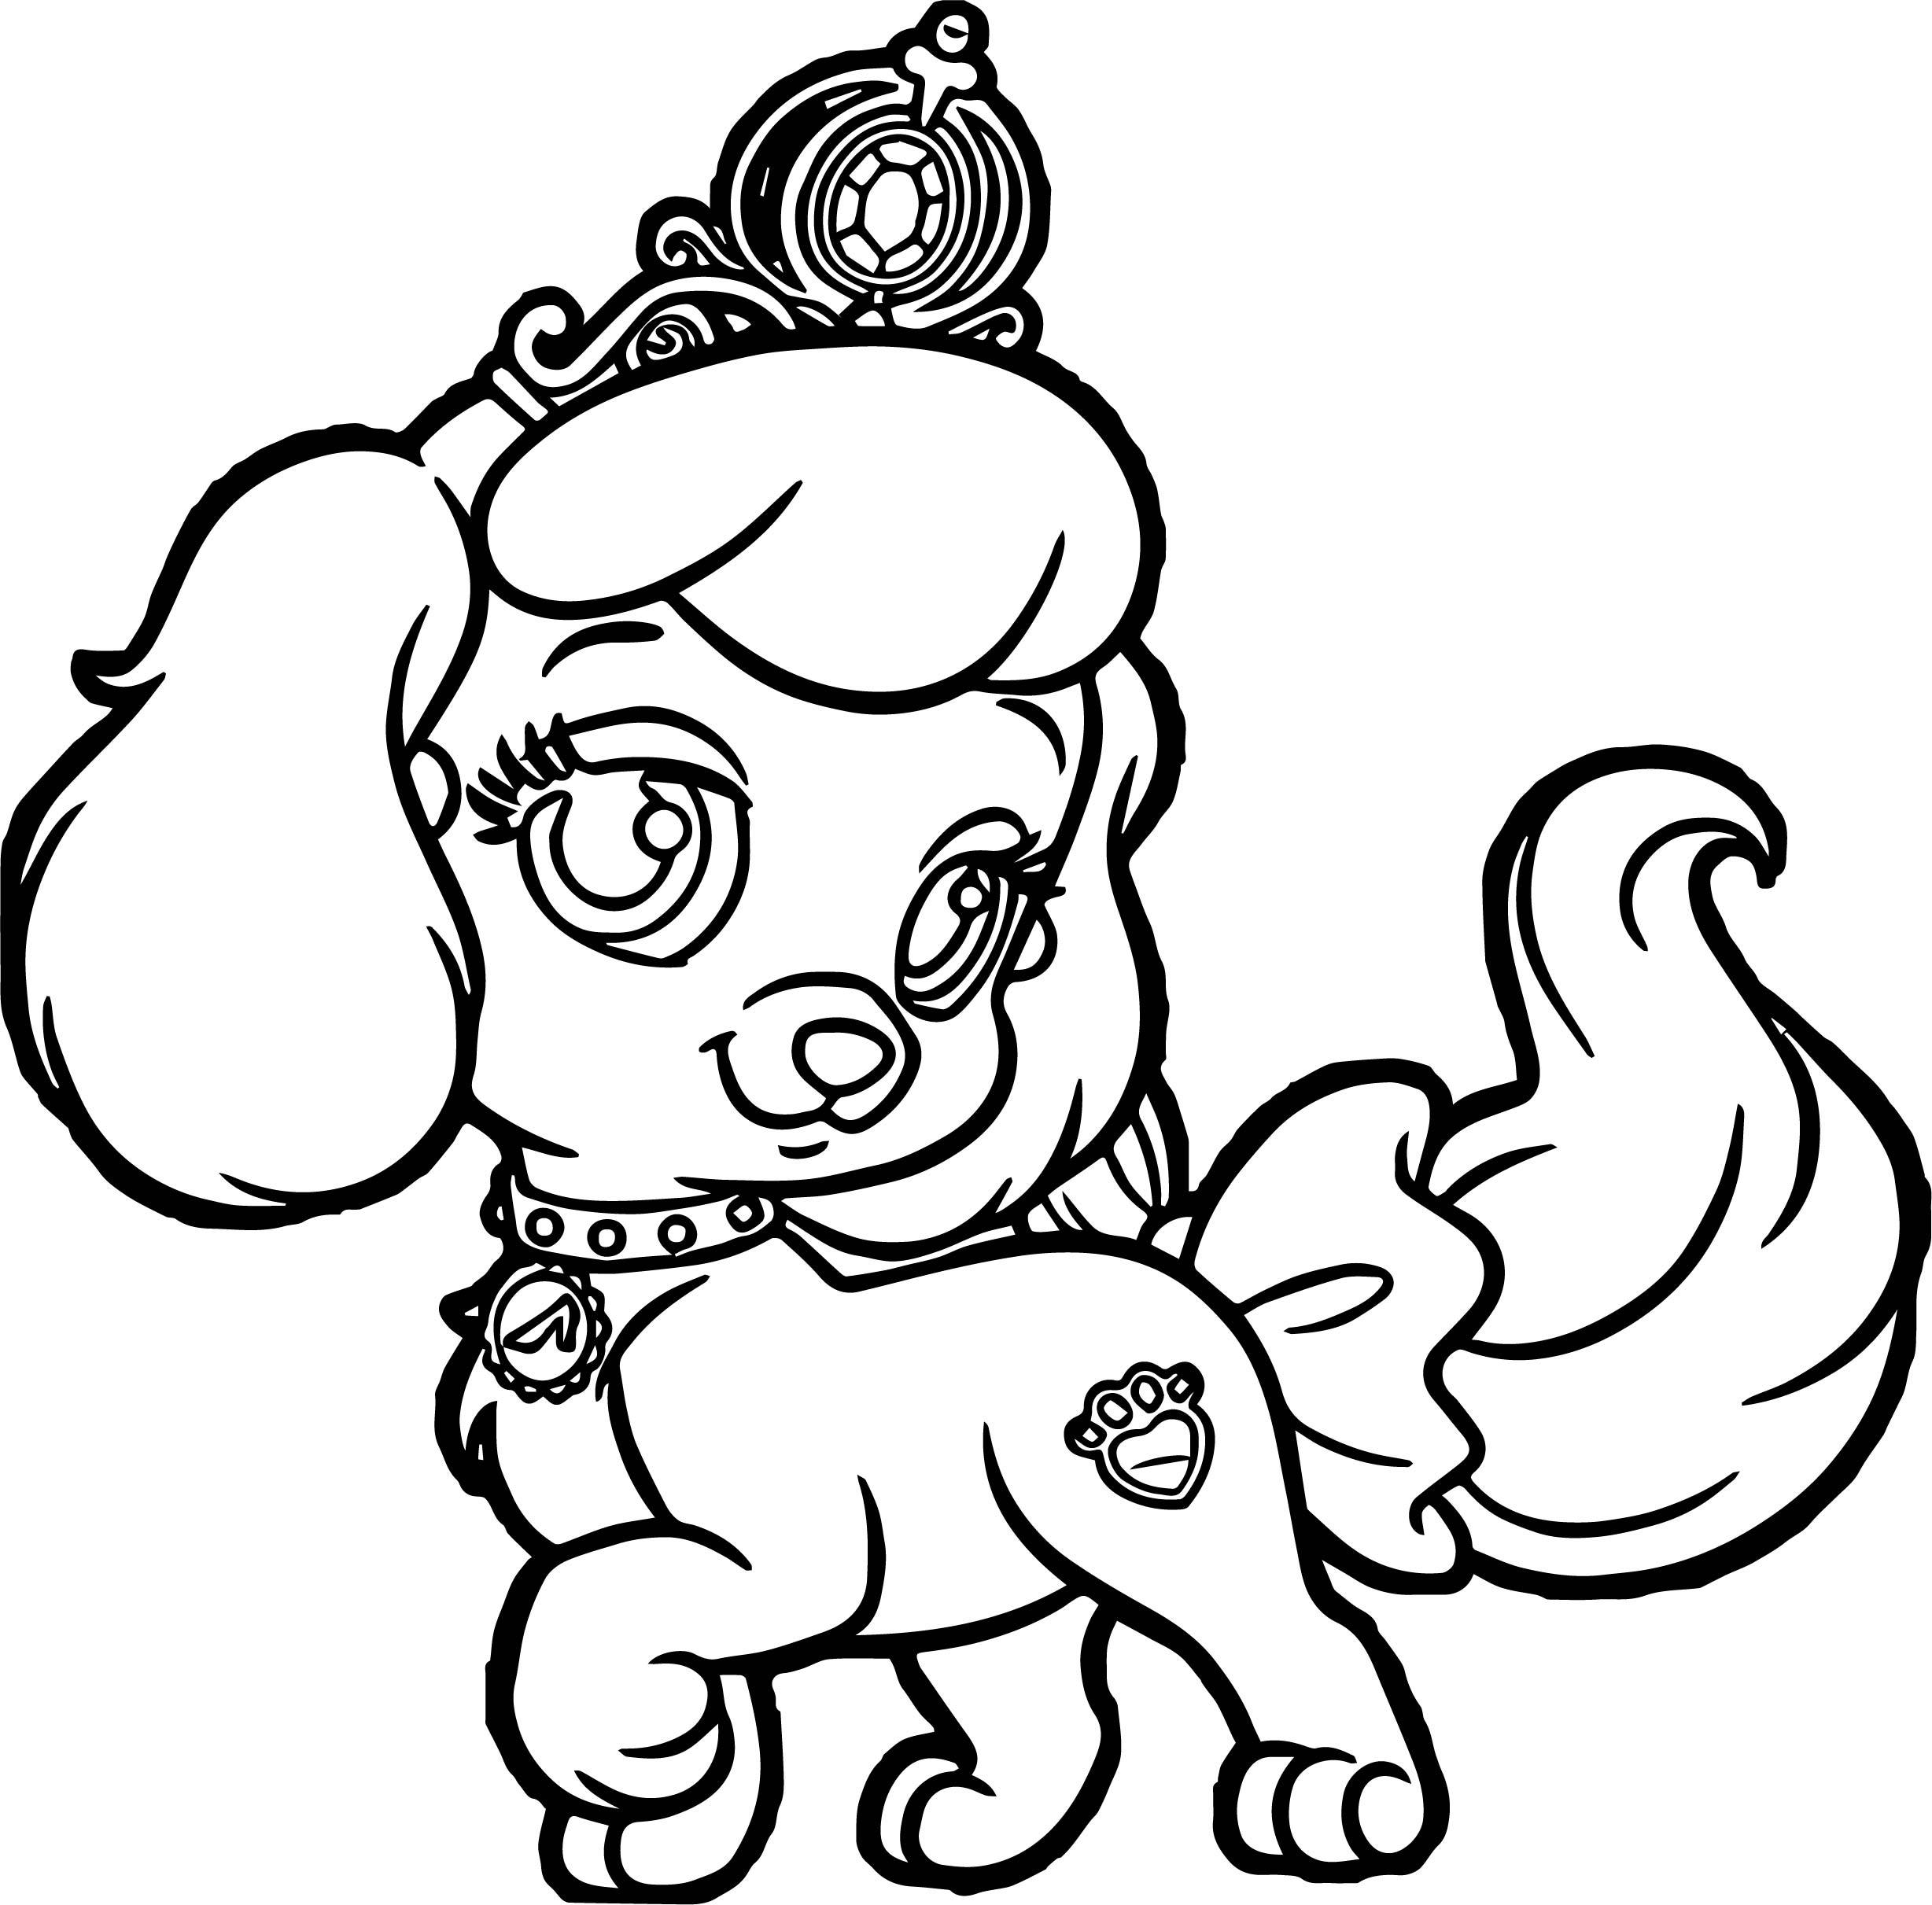 Sad Puppy Coloring Pages At Getcolorings